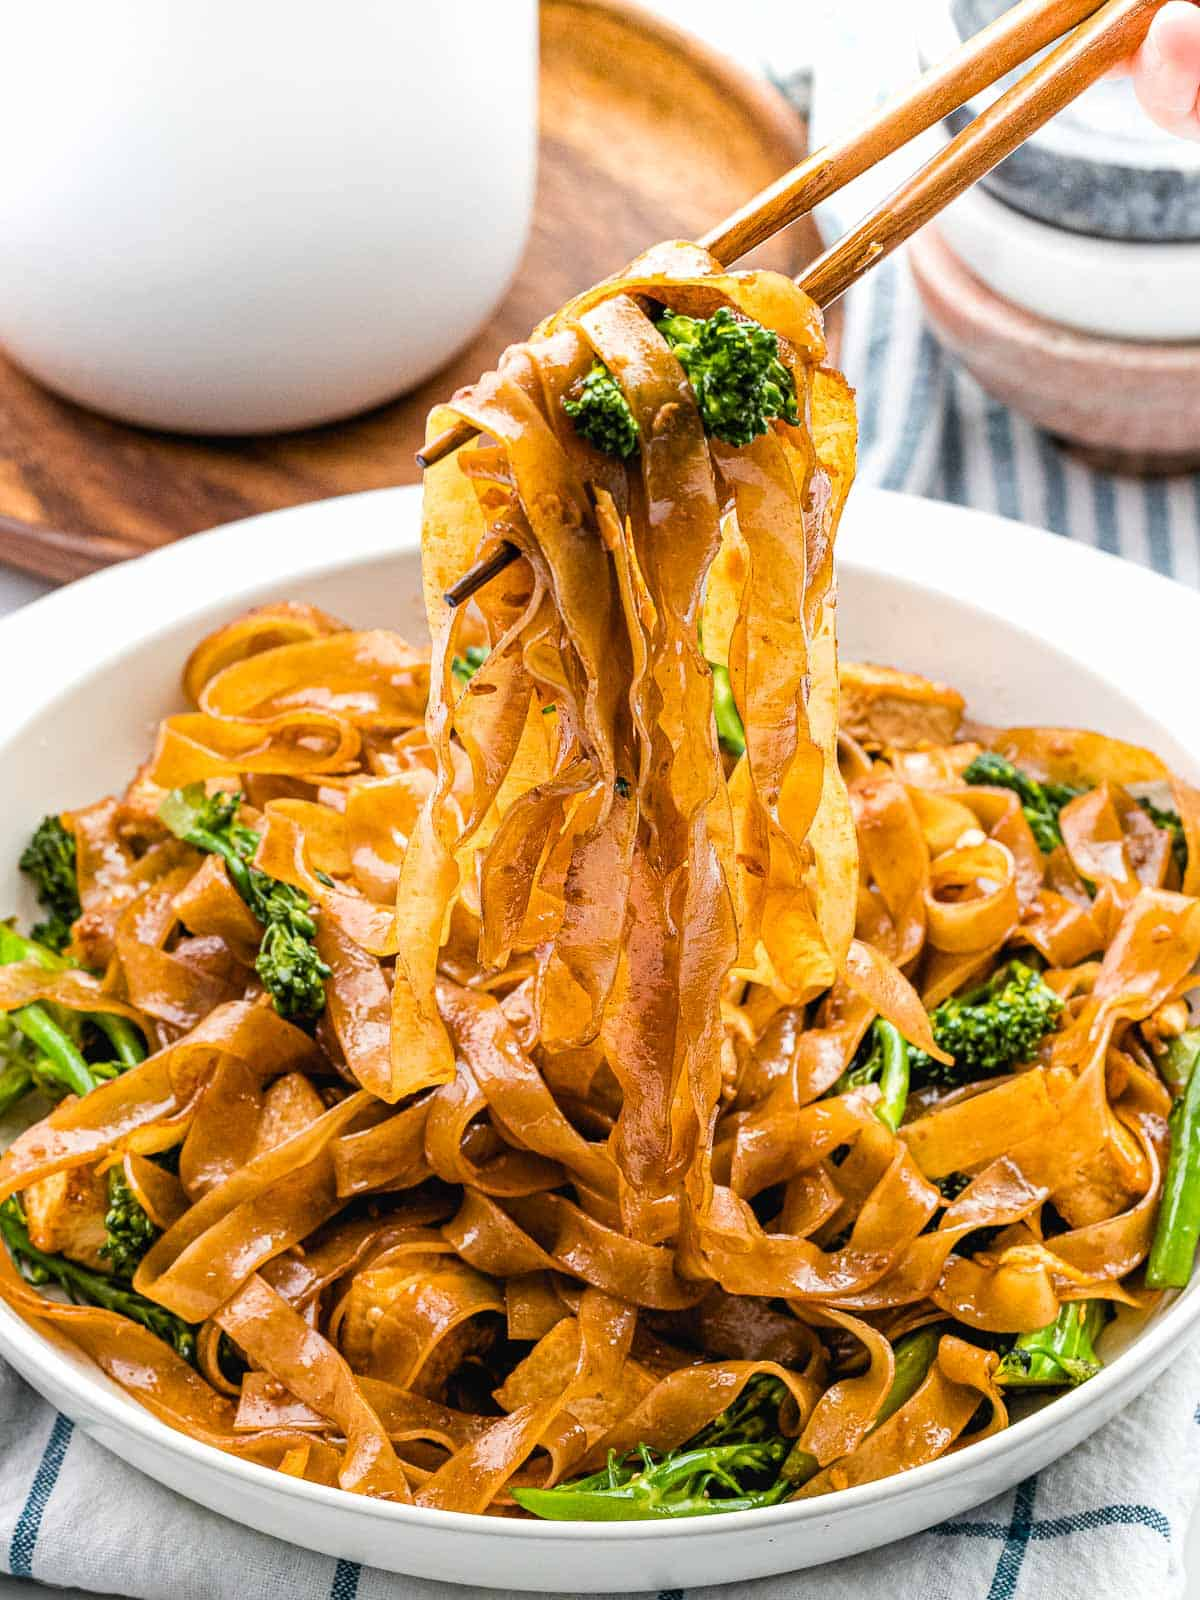 Pad see ew (ผัดซีอิ๊ว) stir fried noodles with broccoli and egg held by chopsticks.